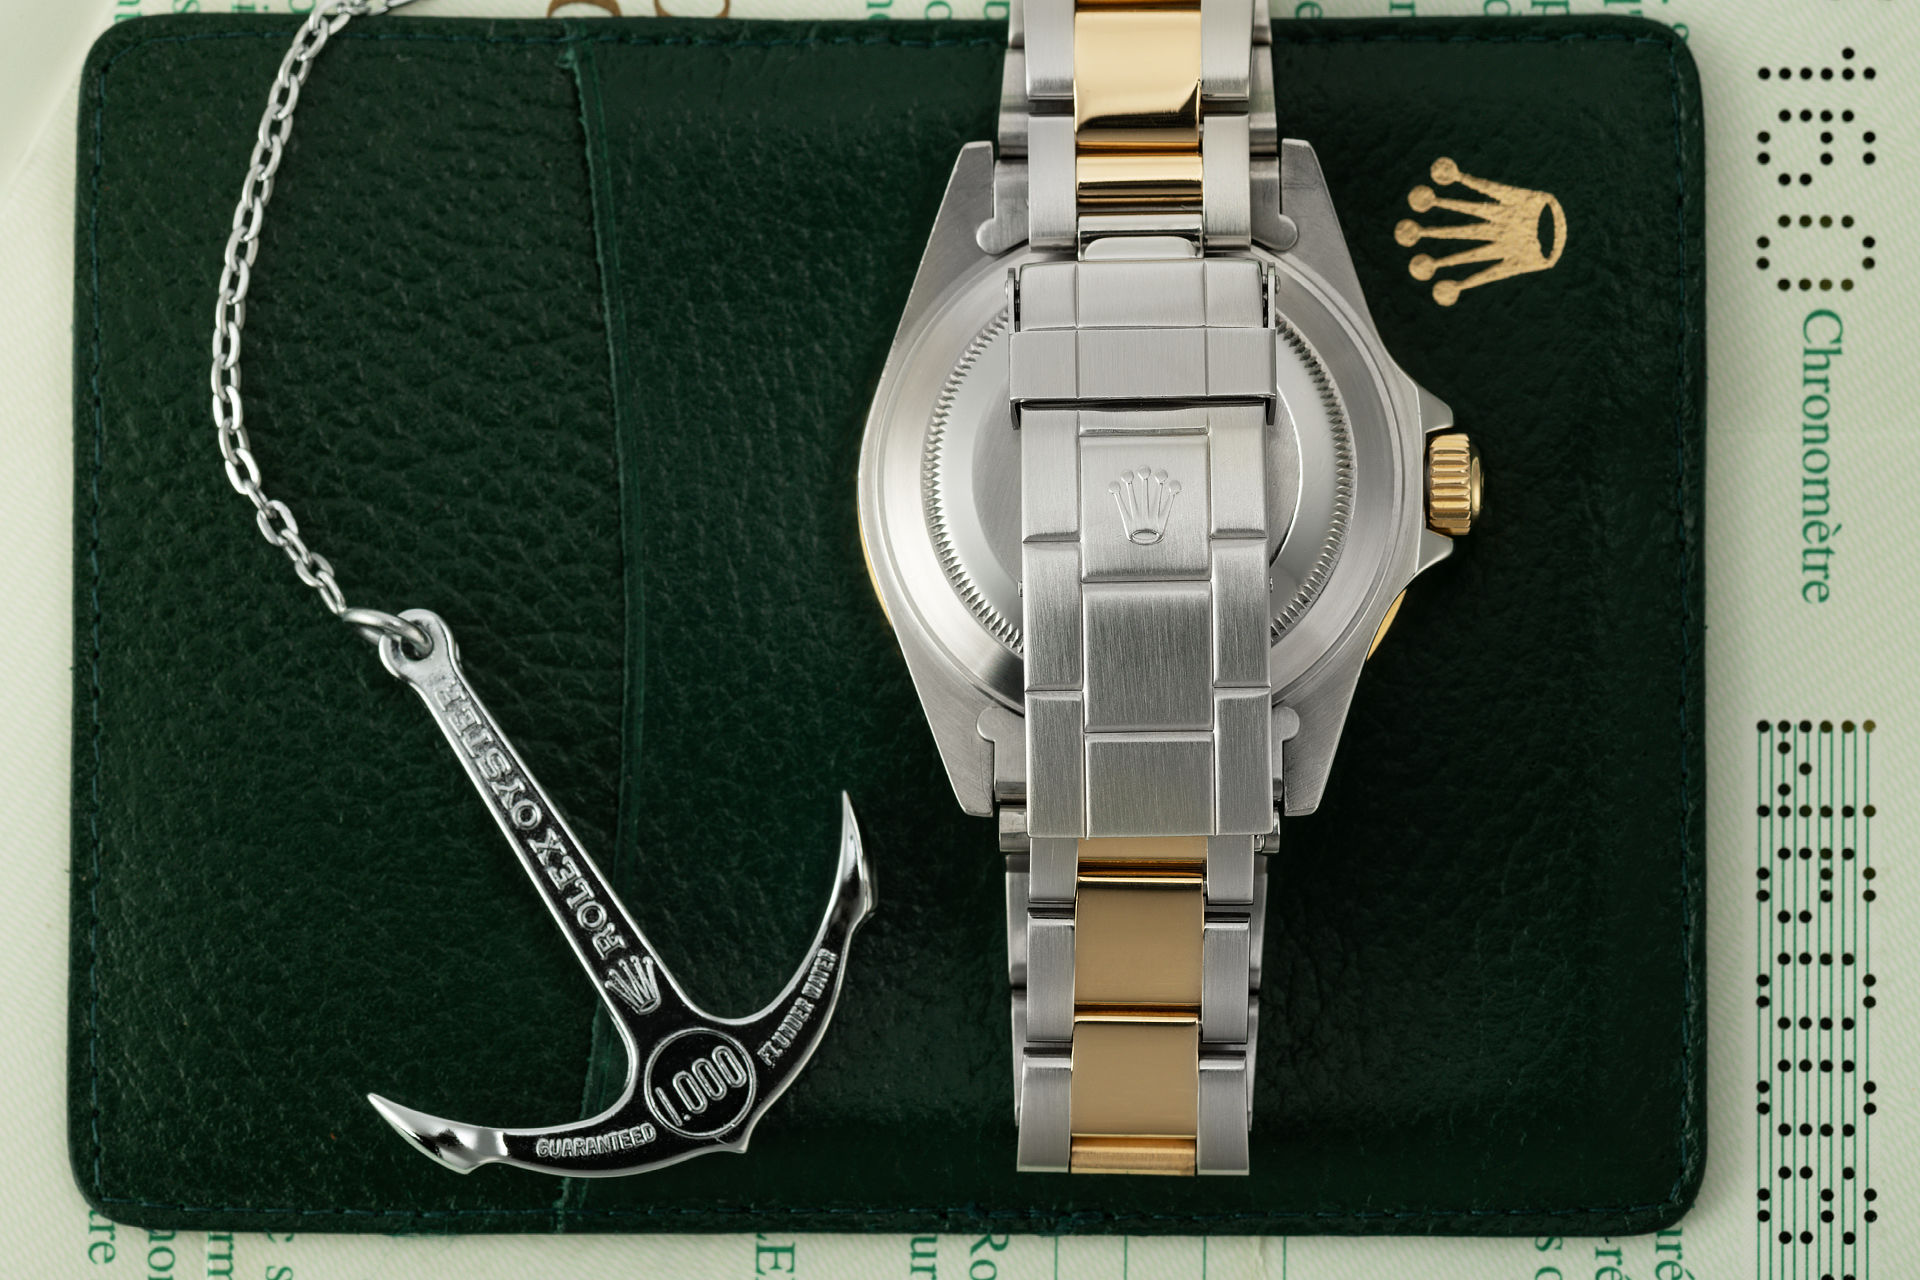 ref 16613 | Gold & steel 'Complete Set' | Rolex Submariner Date